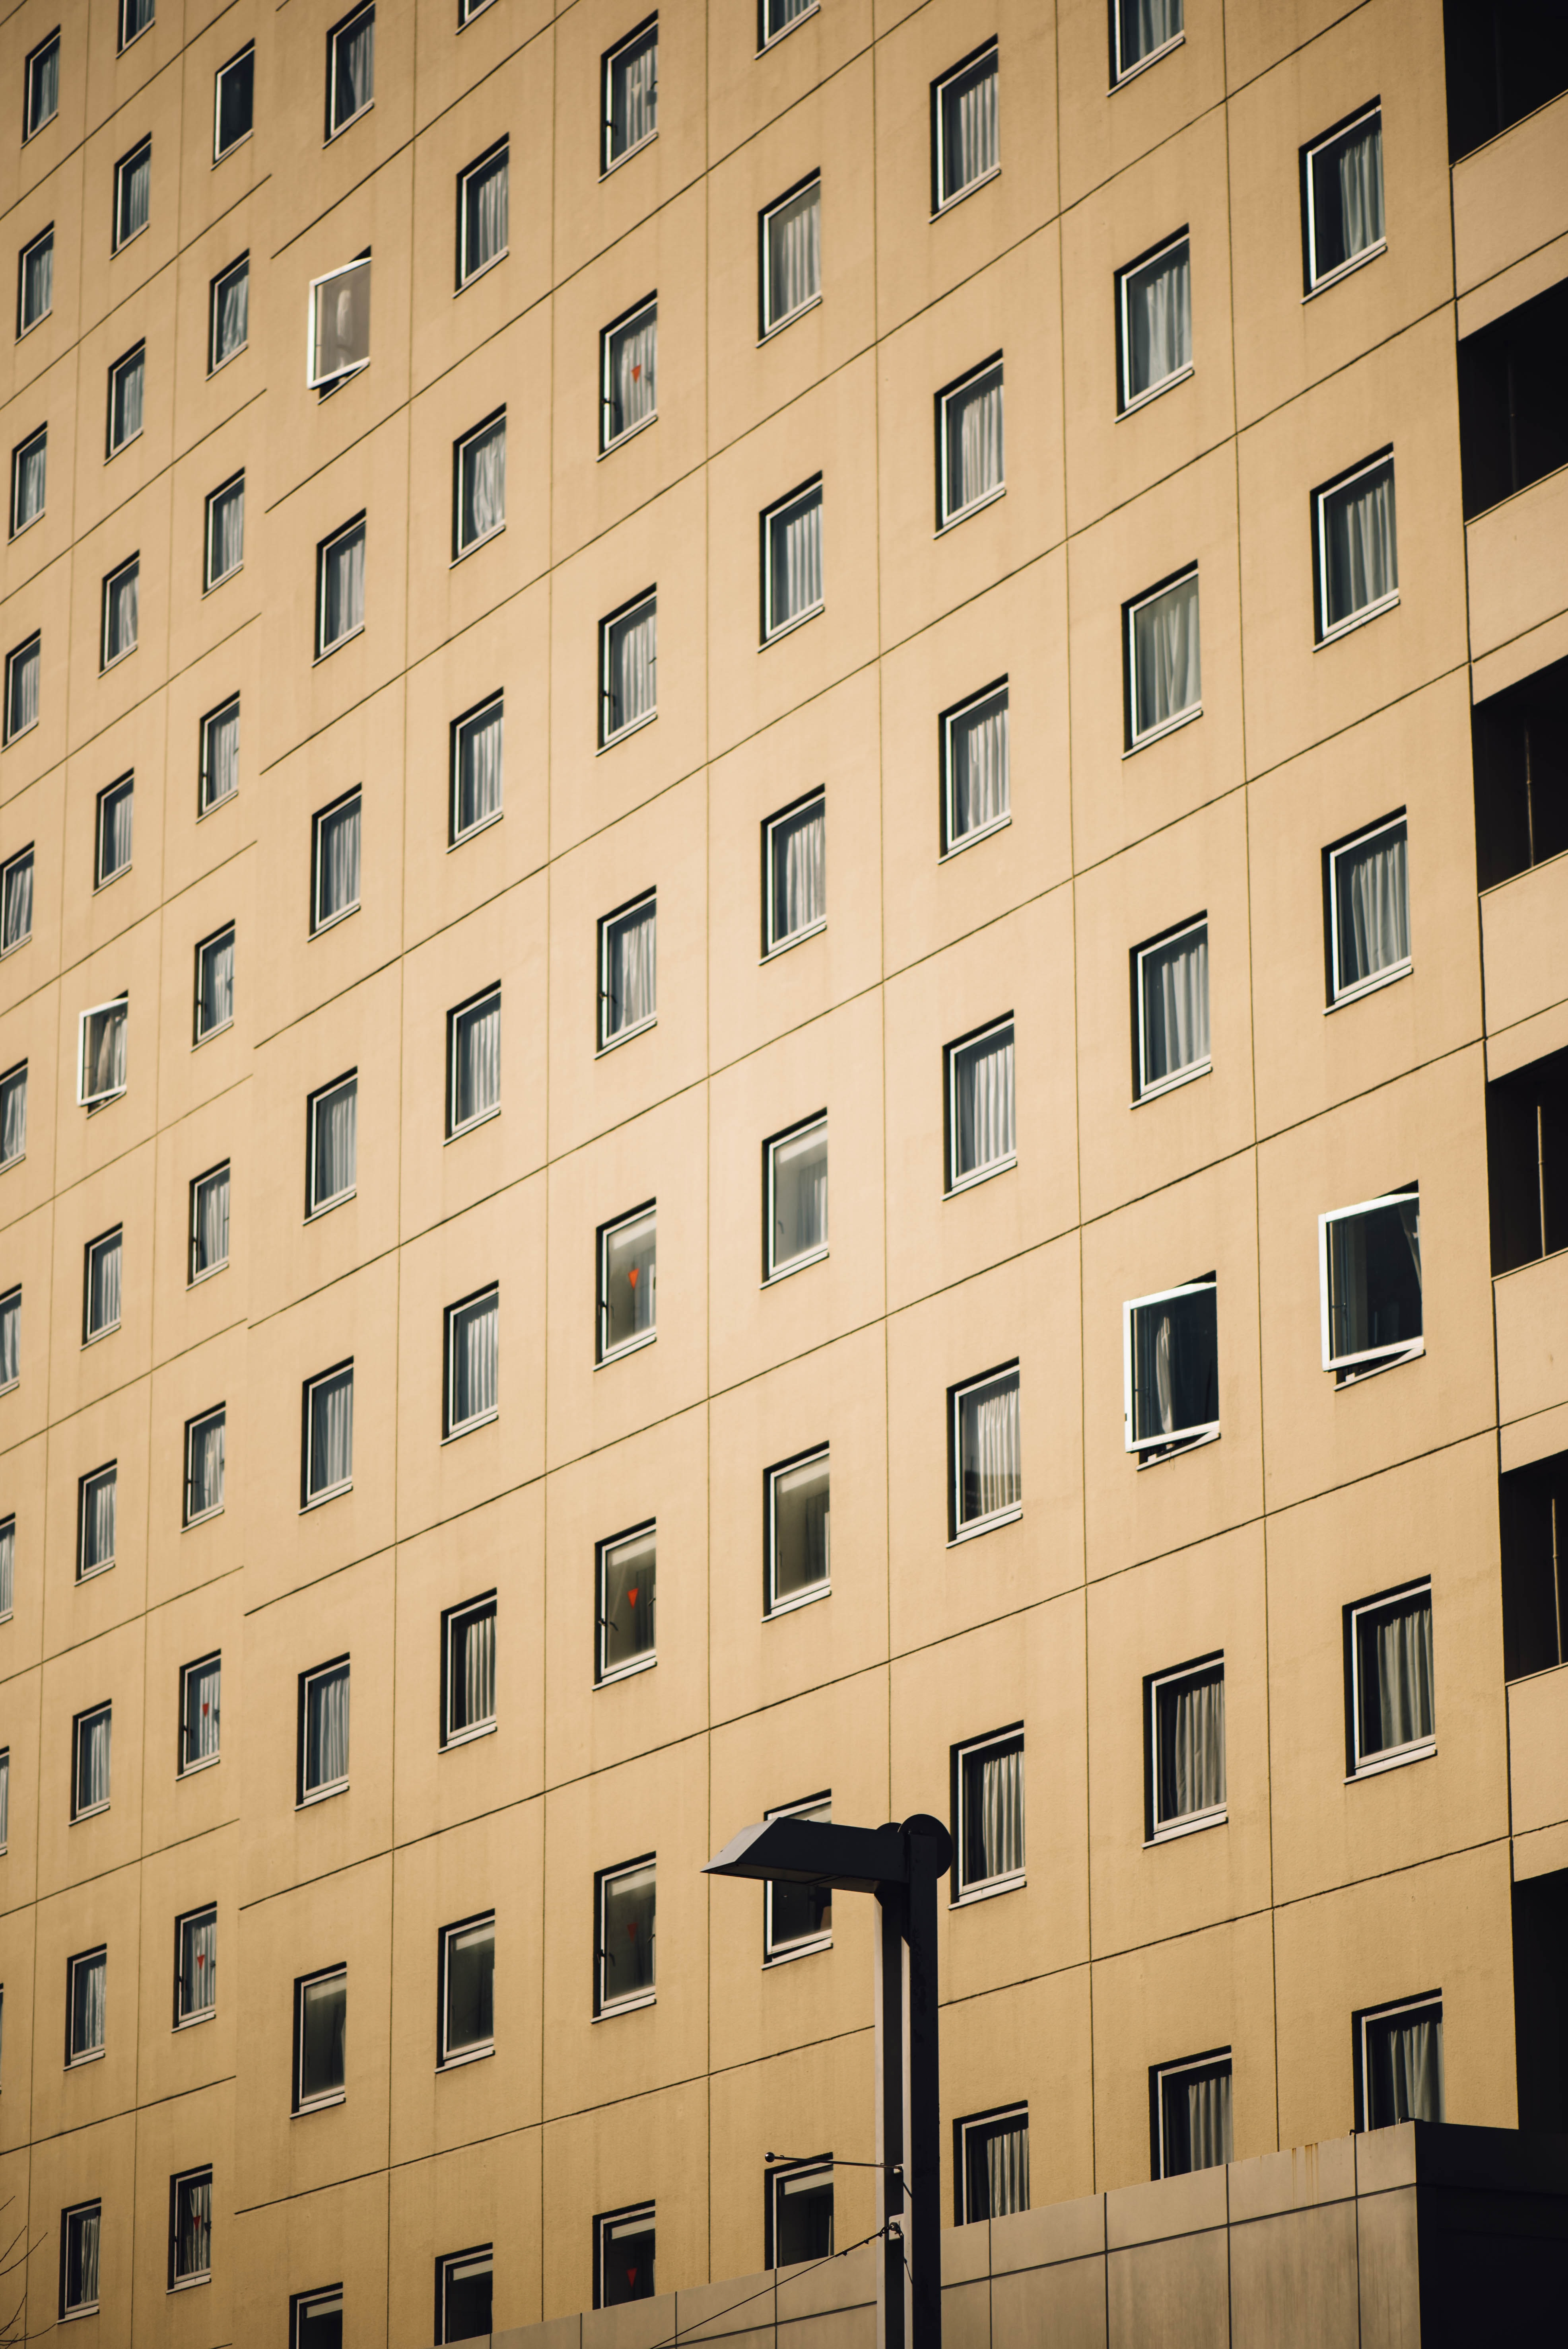 Rows of square windows on beige apartment building exterior